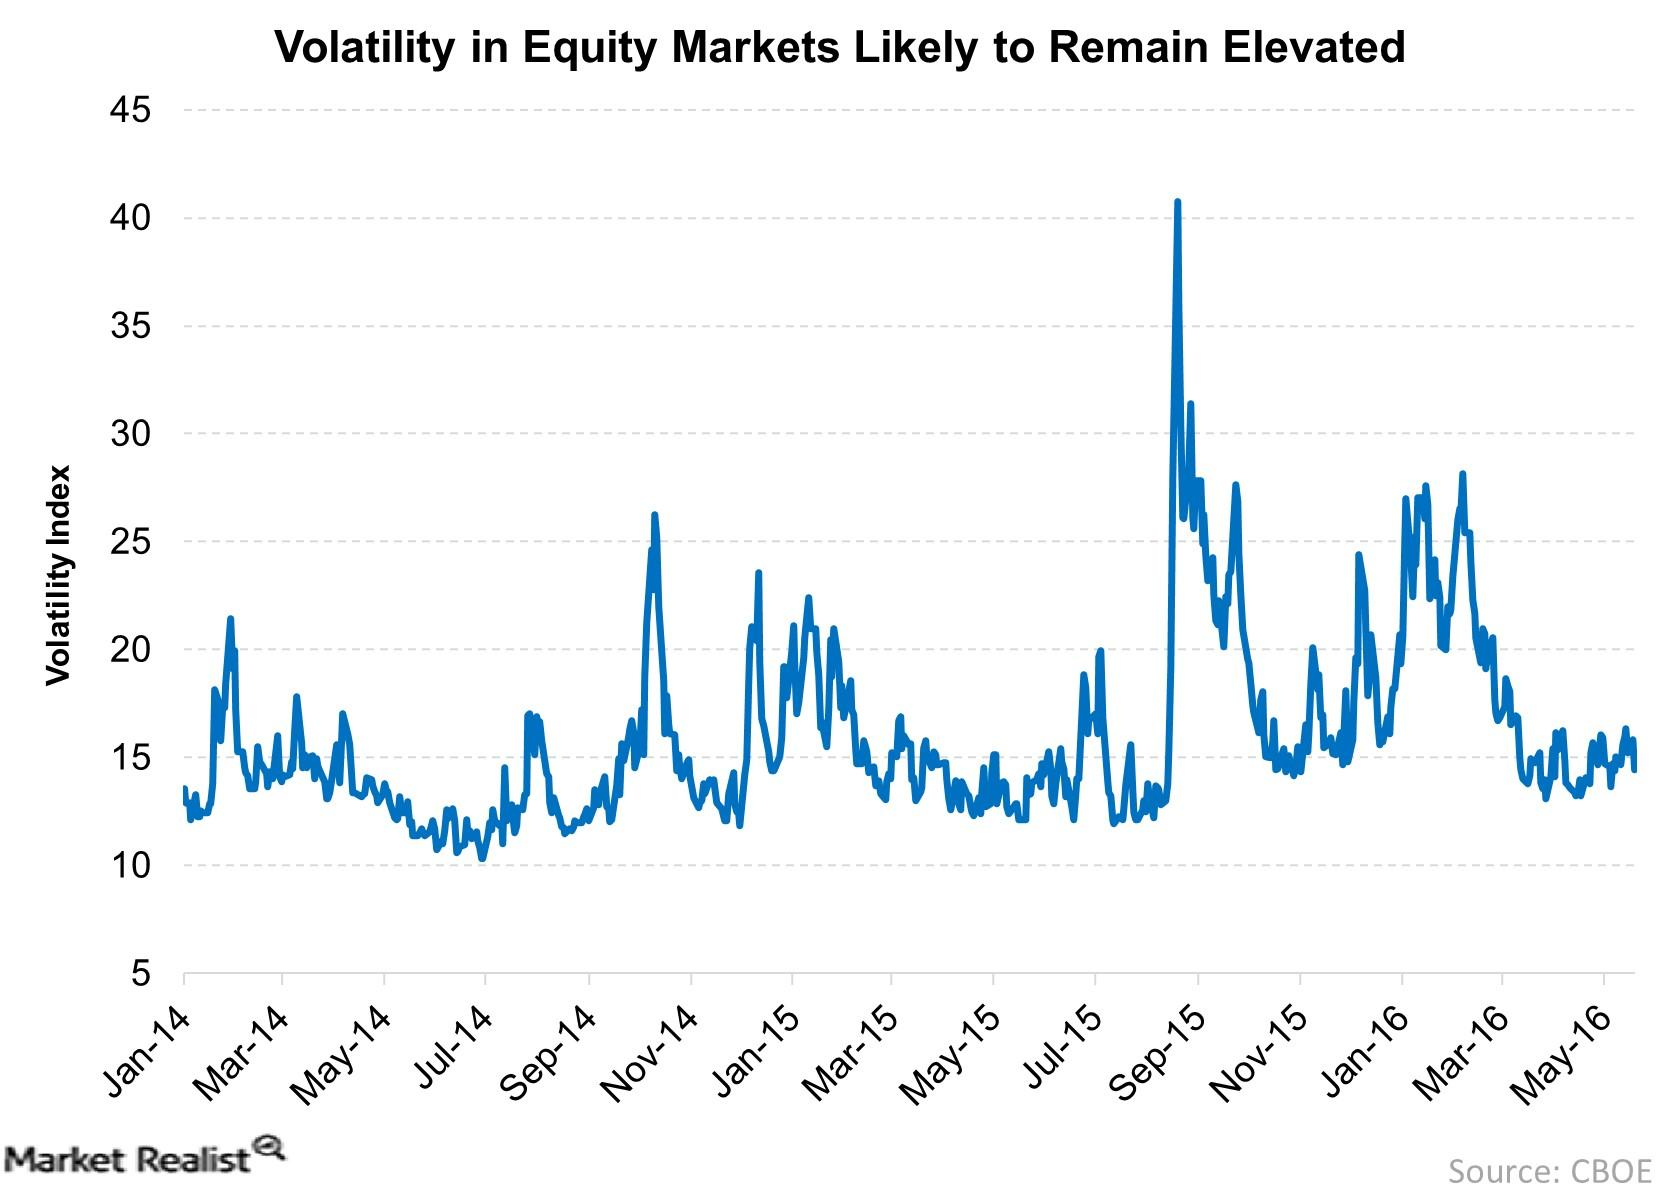 Volatility Is Likely to Remain High